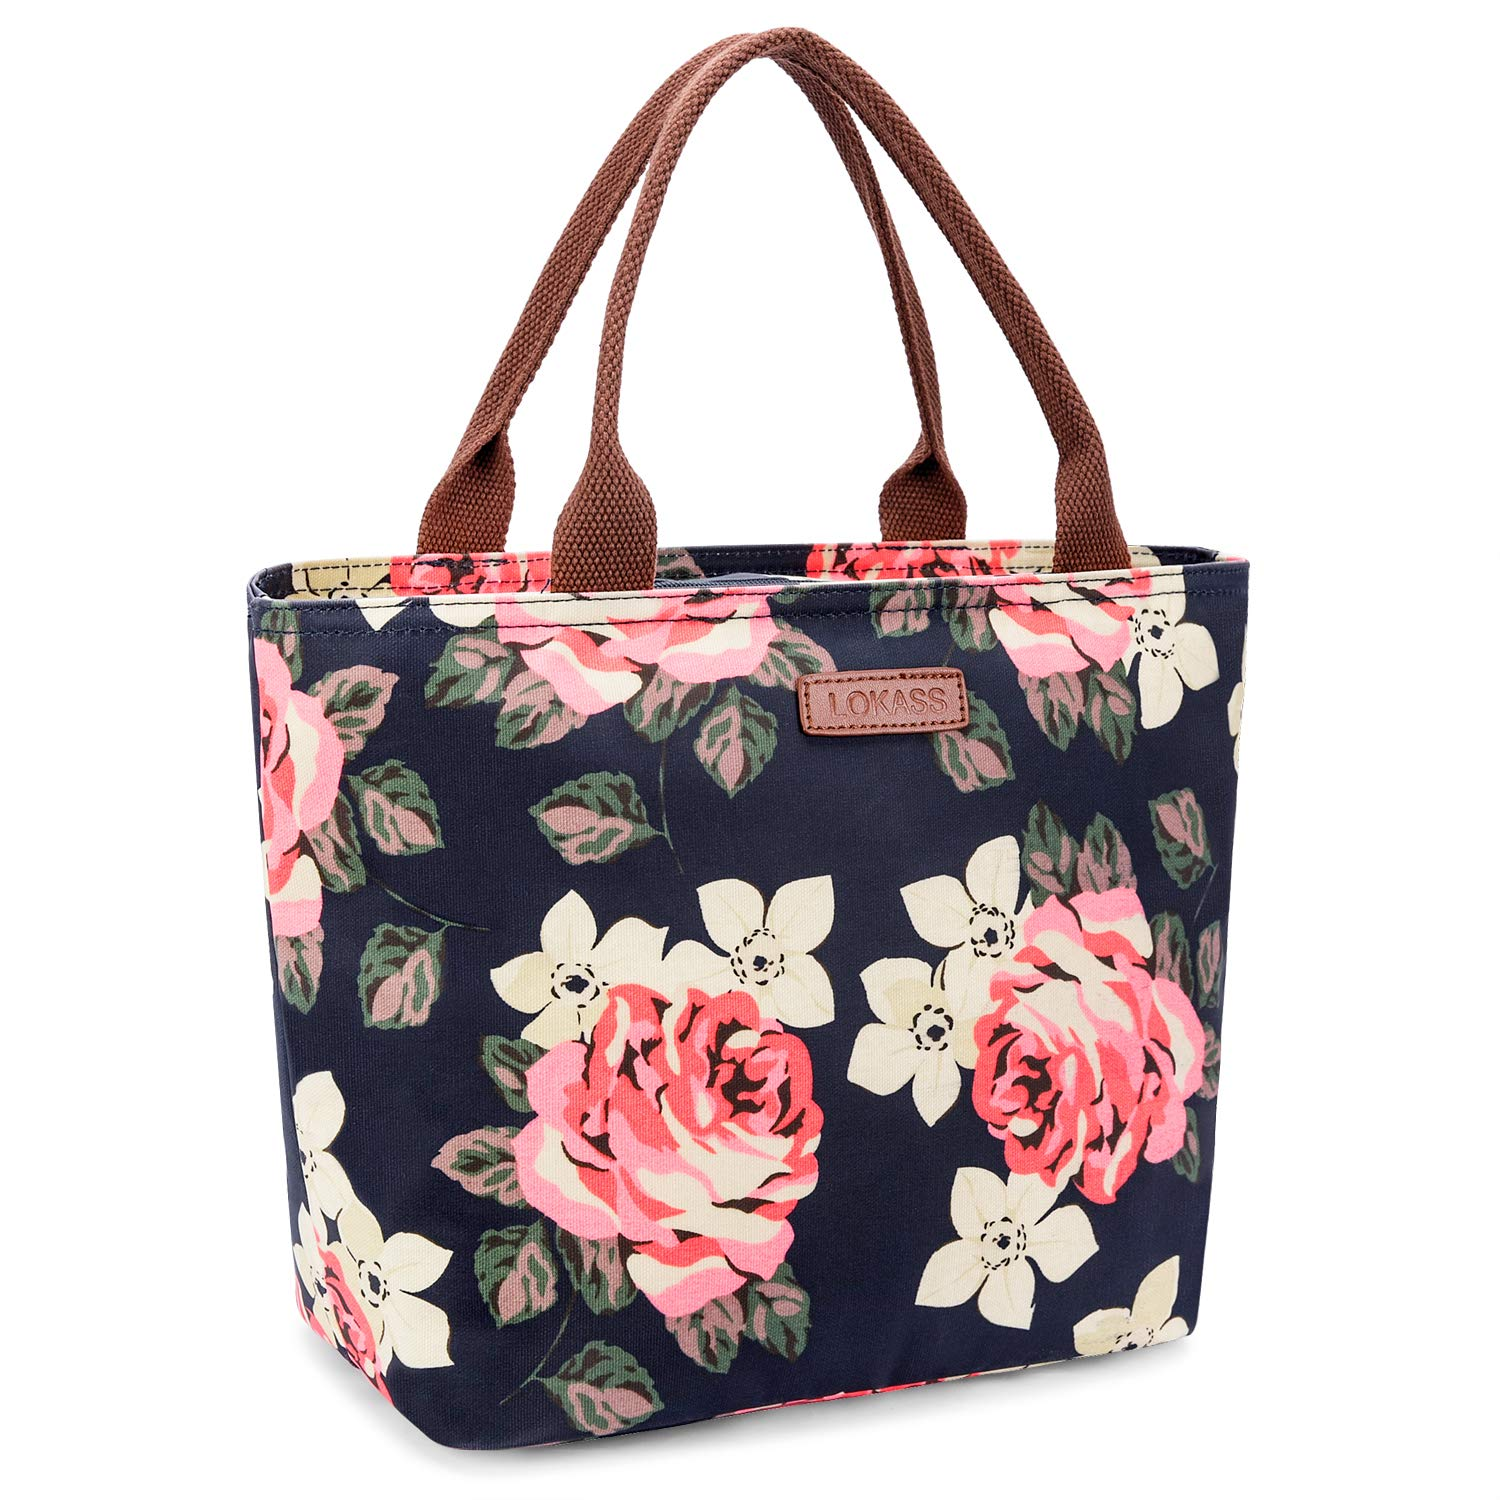 LOKASS Lunch Bag Cooler Bag Women Tote Bag Insulated Lunch Box Water-resistant Thermal Lunch Bag Soft Leak Proof Liner Lunch Bags for women/Picnic/Boating/Beach/Fishing/School/Work (Peony) BBGO